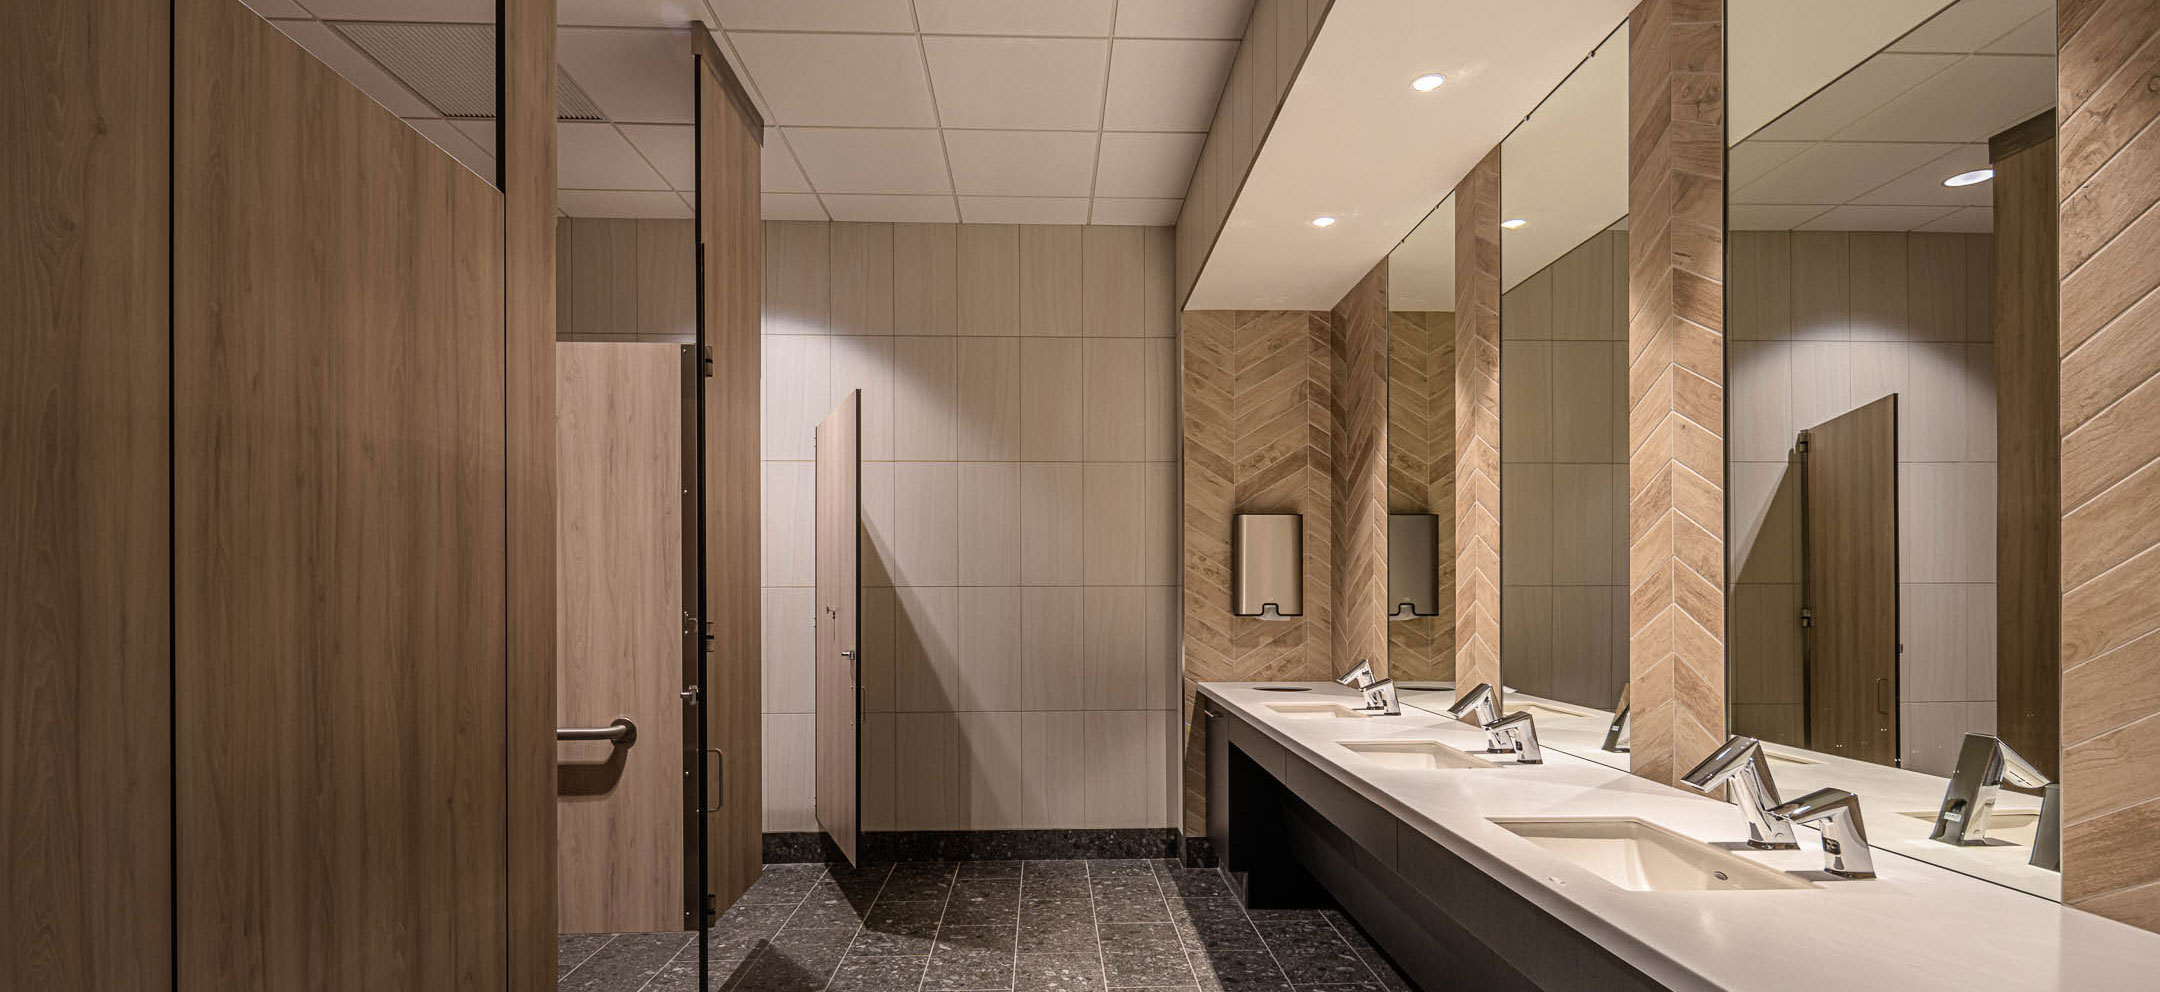 Bathrooms of Nature's Way new corporate office facility constructed by C.D. Smith Construction firm